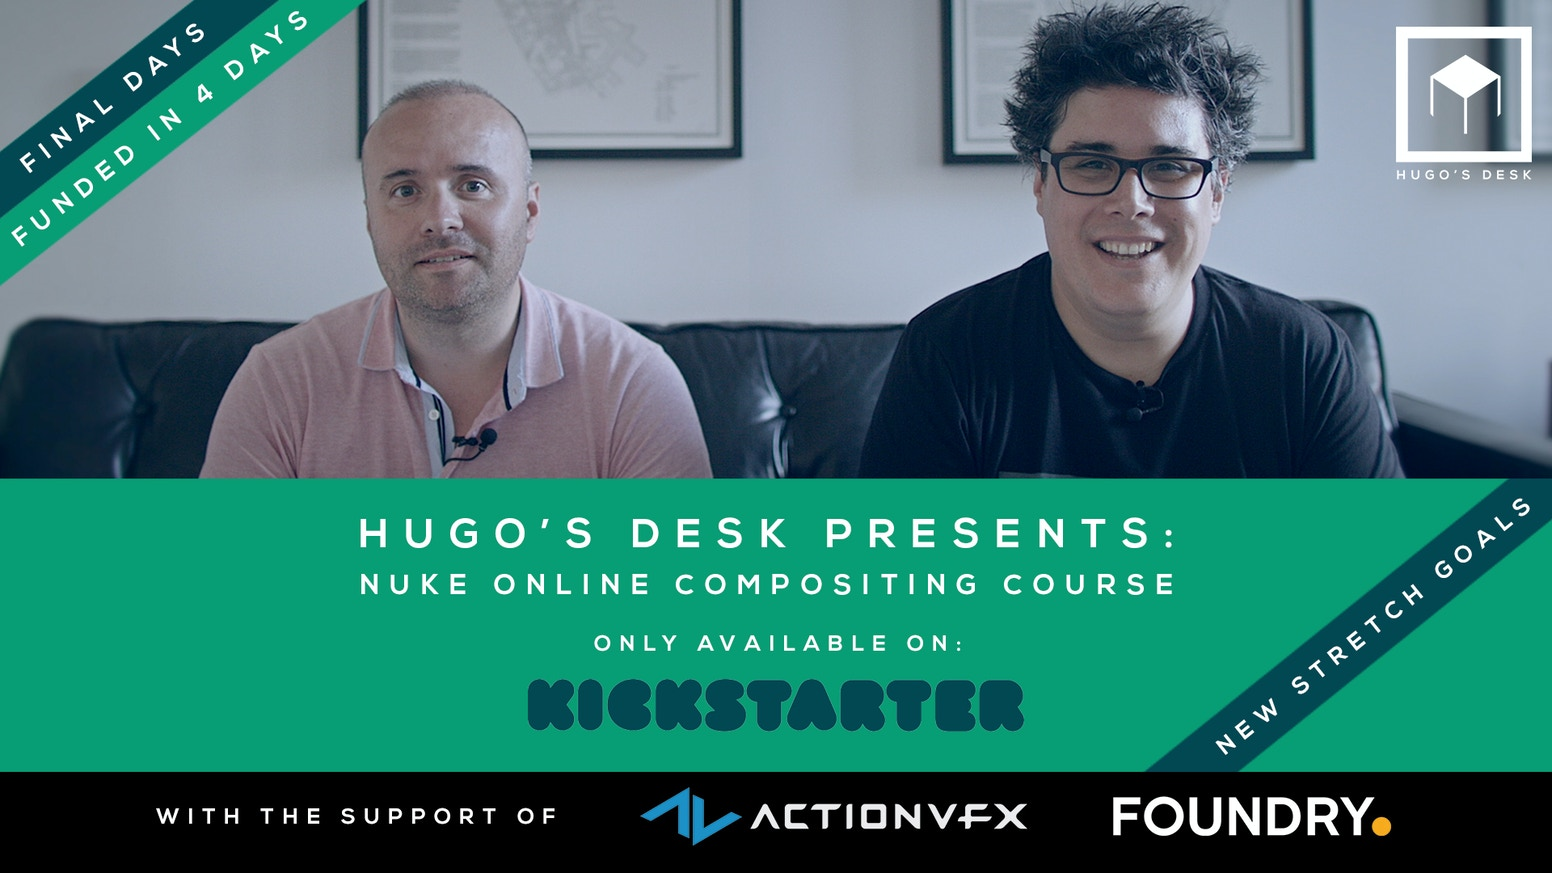 Hugo's Desk Presents: The complete Nuke Compositing course by Hugo's